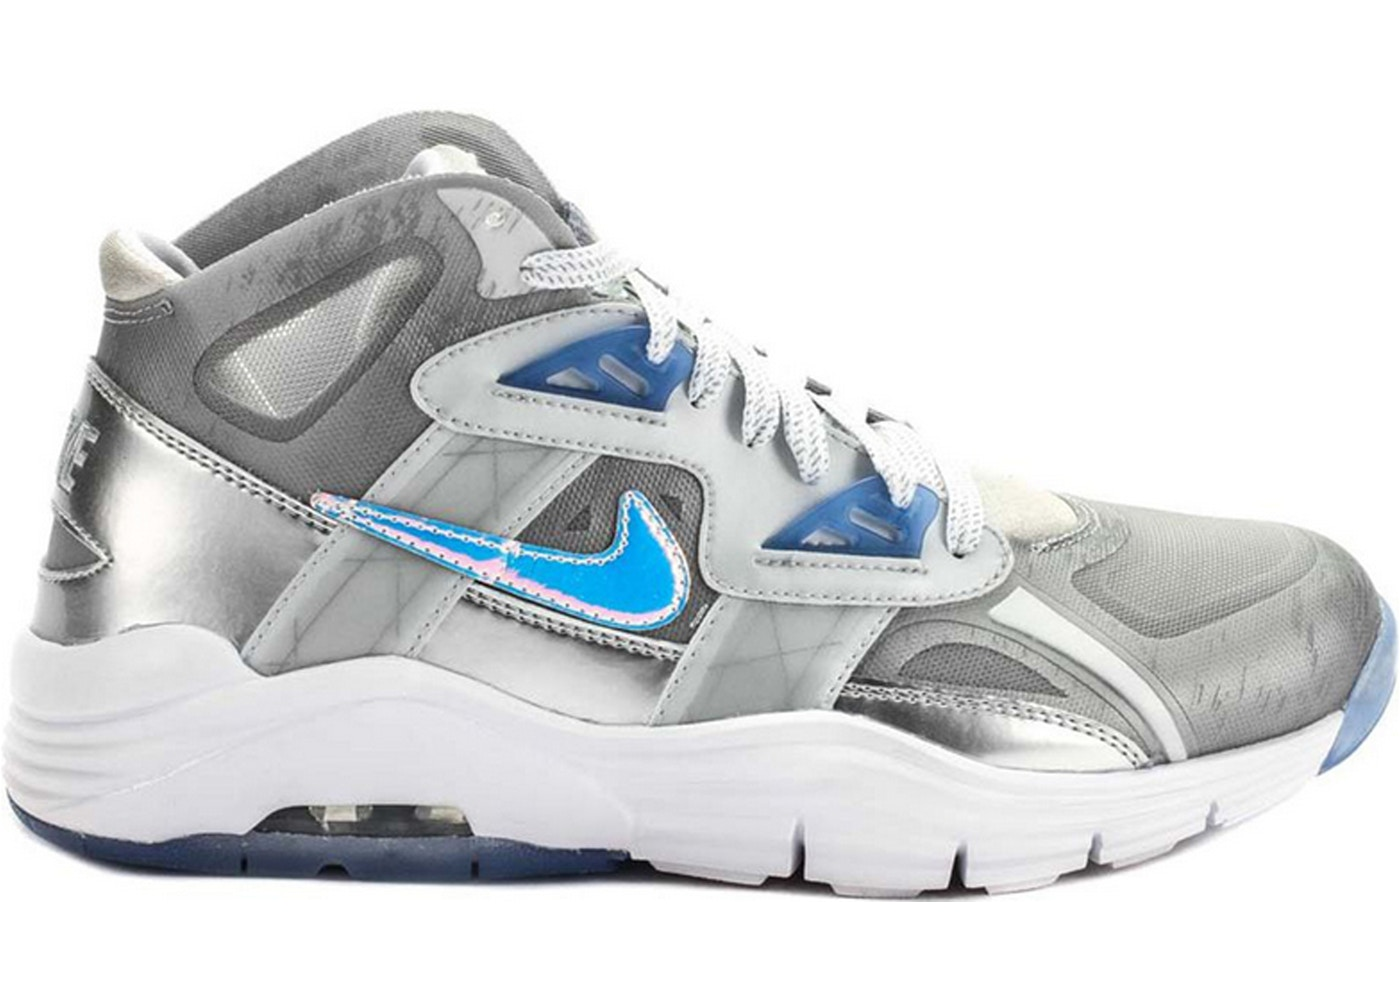 56dc4c0484ac Sell. or Ask. Size  13. View All Bids. Nike Lunar 180 Trainer ...